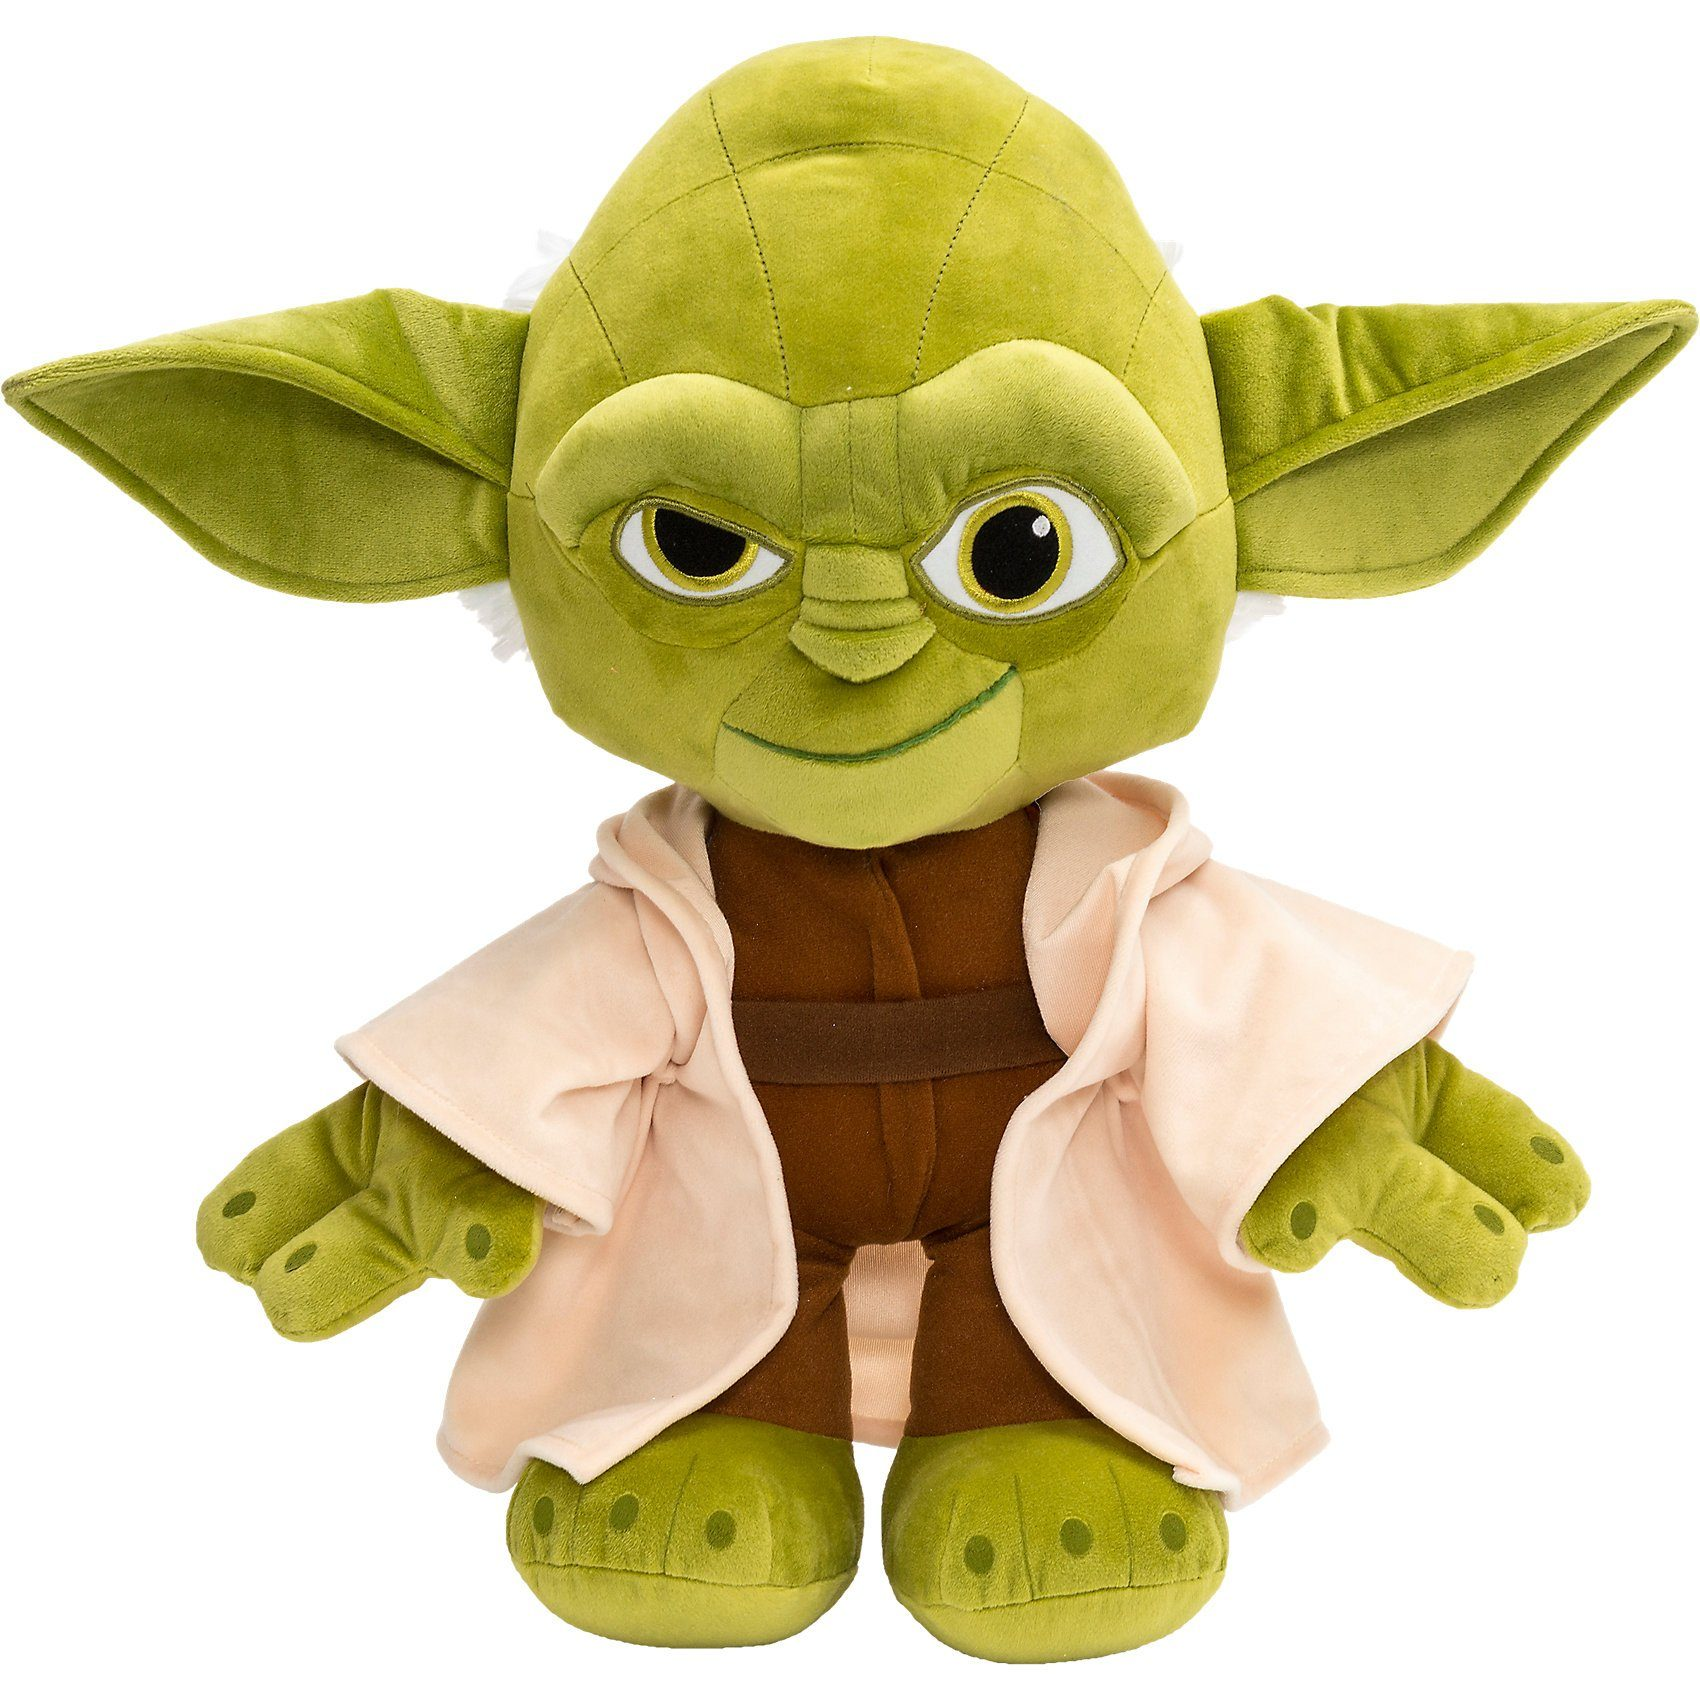 JOY TOY Velboa-Samtplüsch Yoda Star Wars, 45 cm